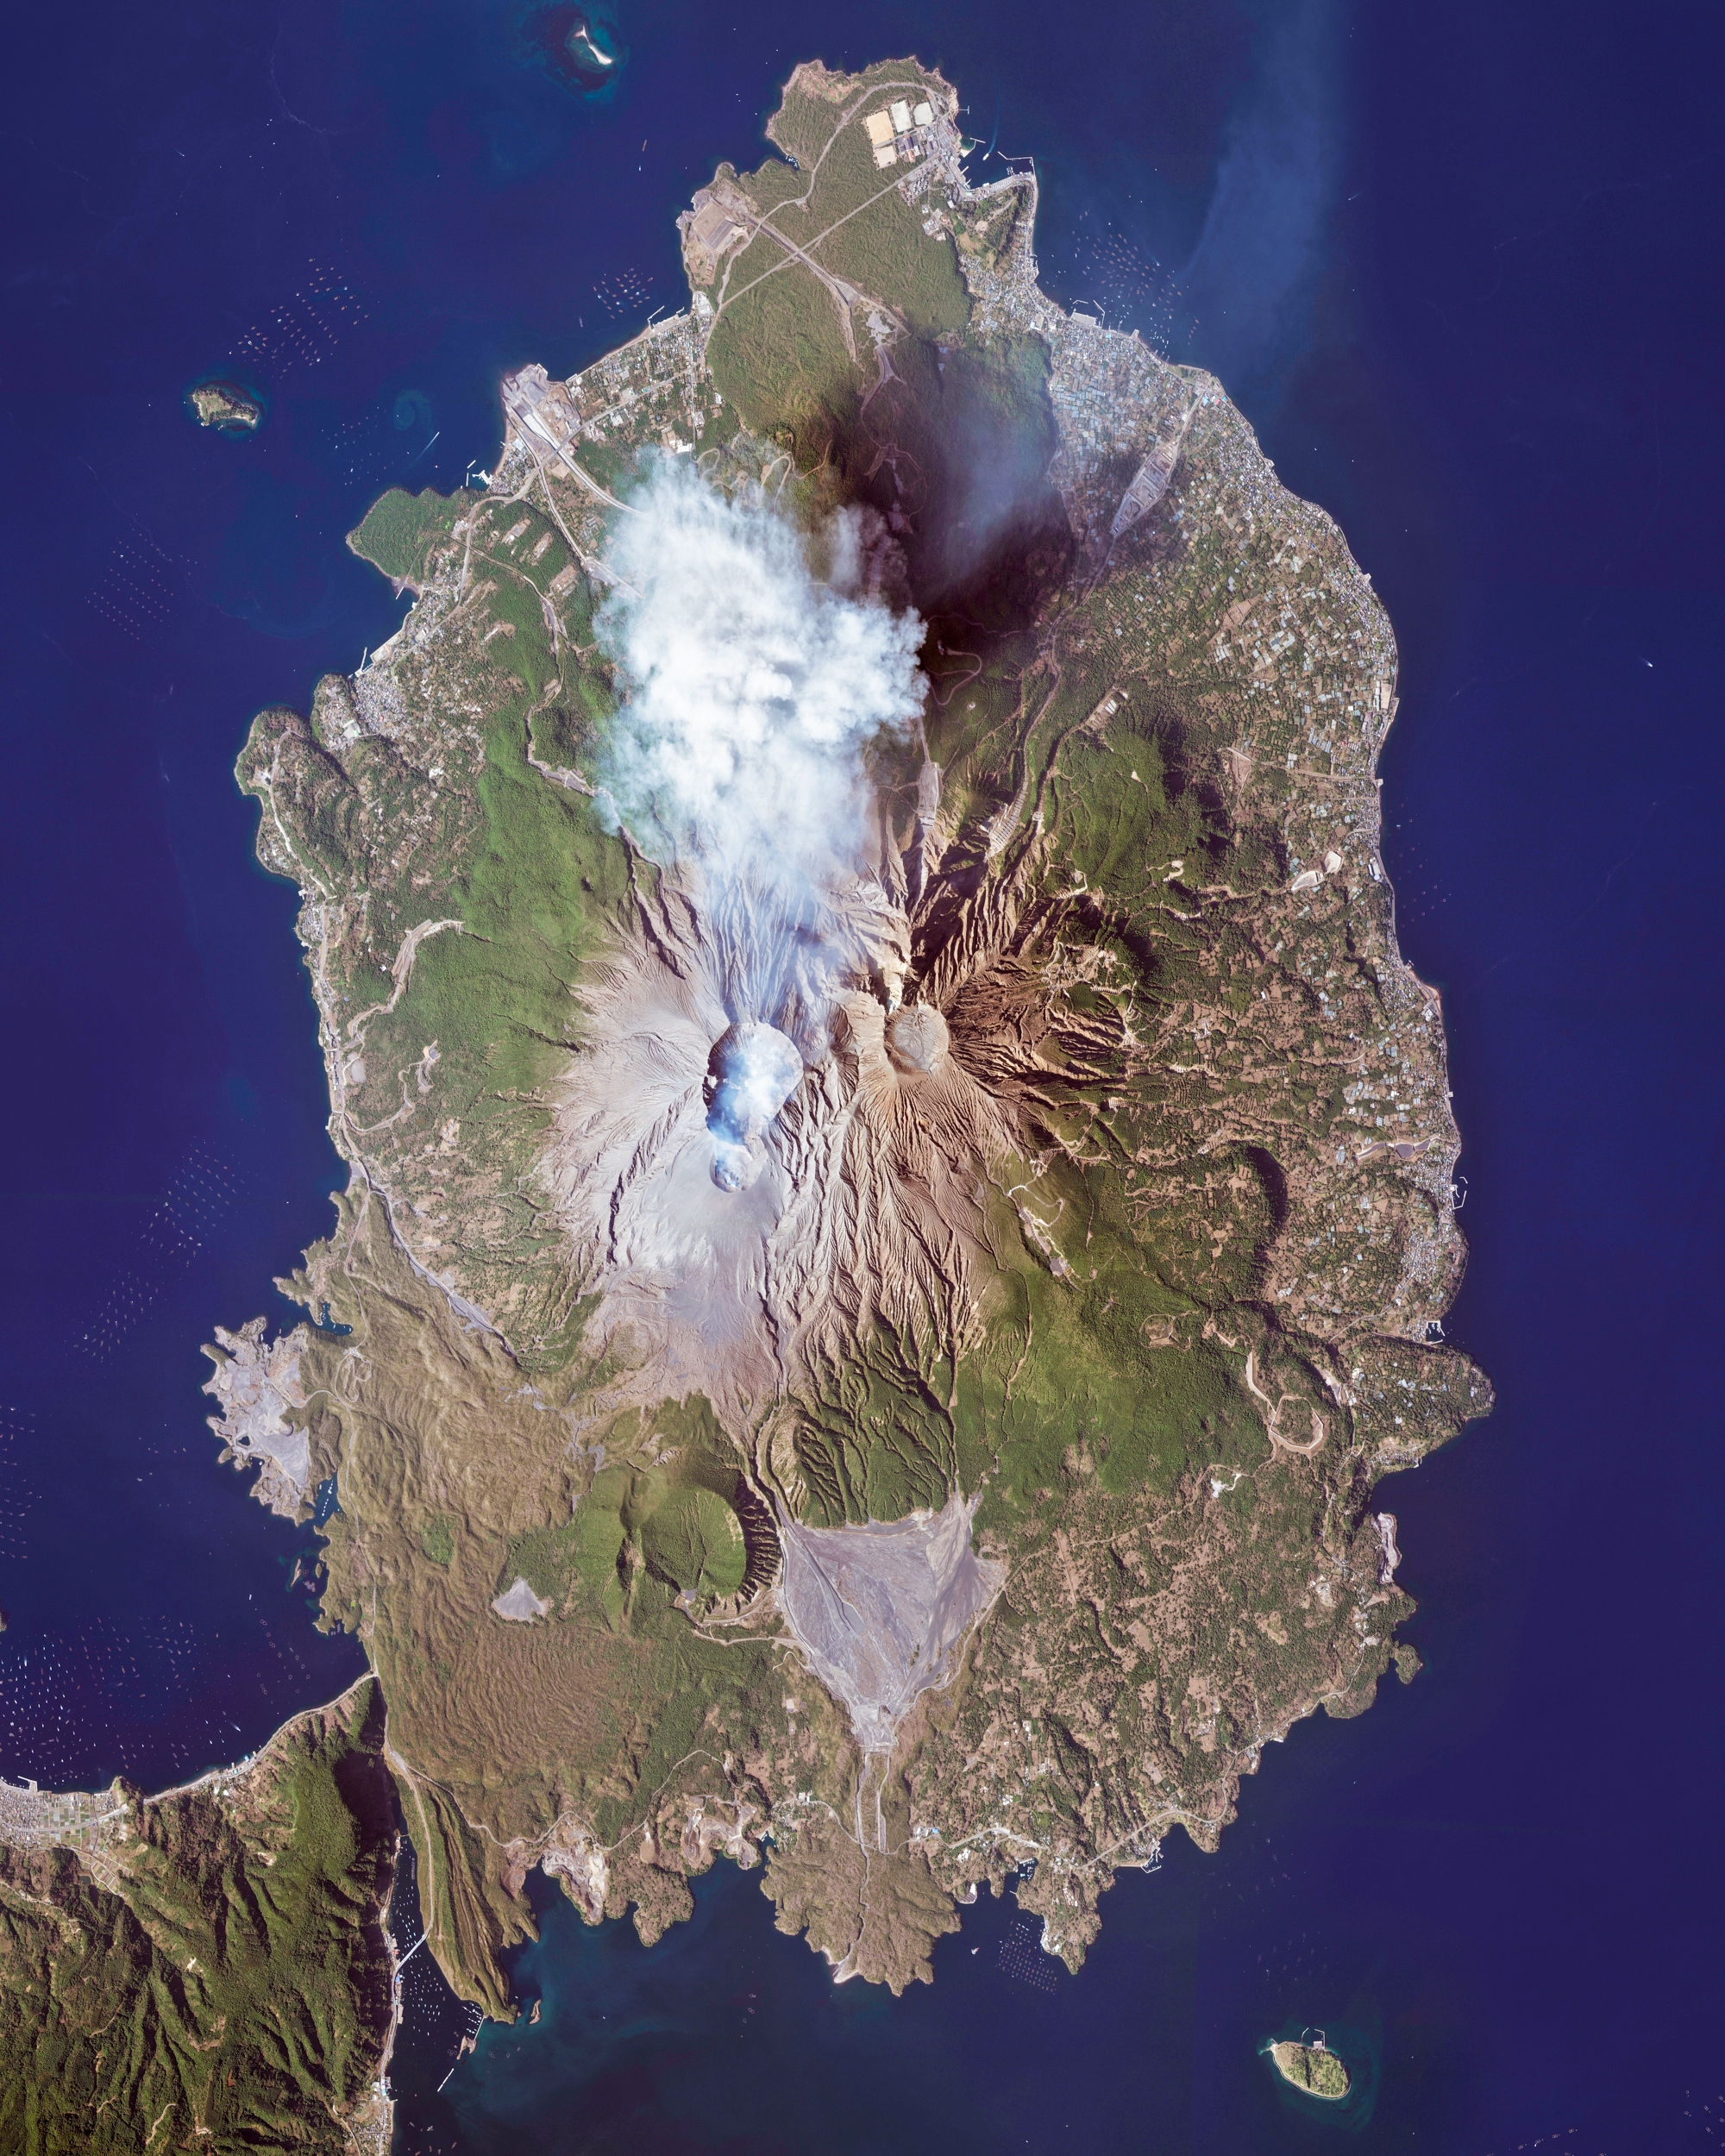 """Sakurajima is an active stratovolcano and a former island in Kyushu, Japan. Lava flows from the volcano's 1914 eruption connected it with the Osumi Peninsula, as shown in the bottom left of this Overview. Since 1955, Sakurajima has been erupting almost constantly, producing thousands of small explosions every year.  31°35'00.0""""N, 130°39'00.0""""E  Source imagery: DigitalGlobe"""